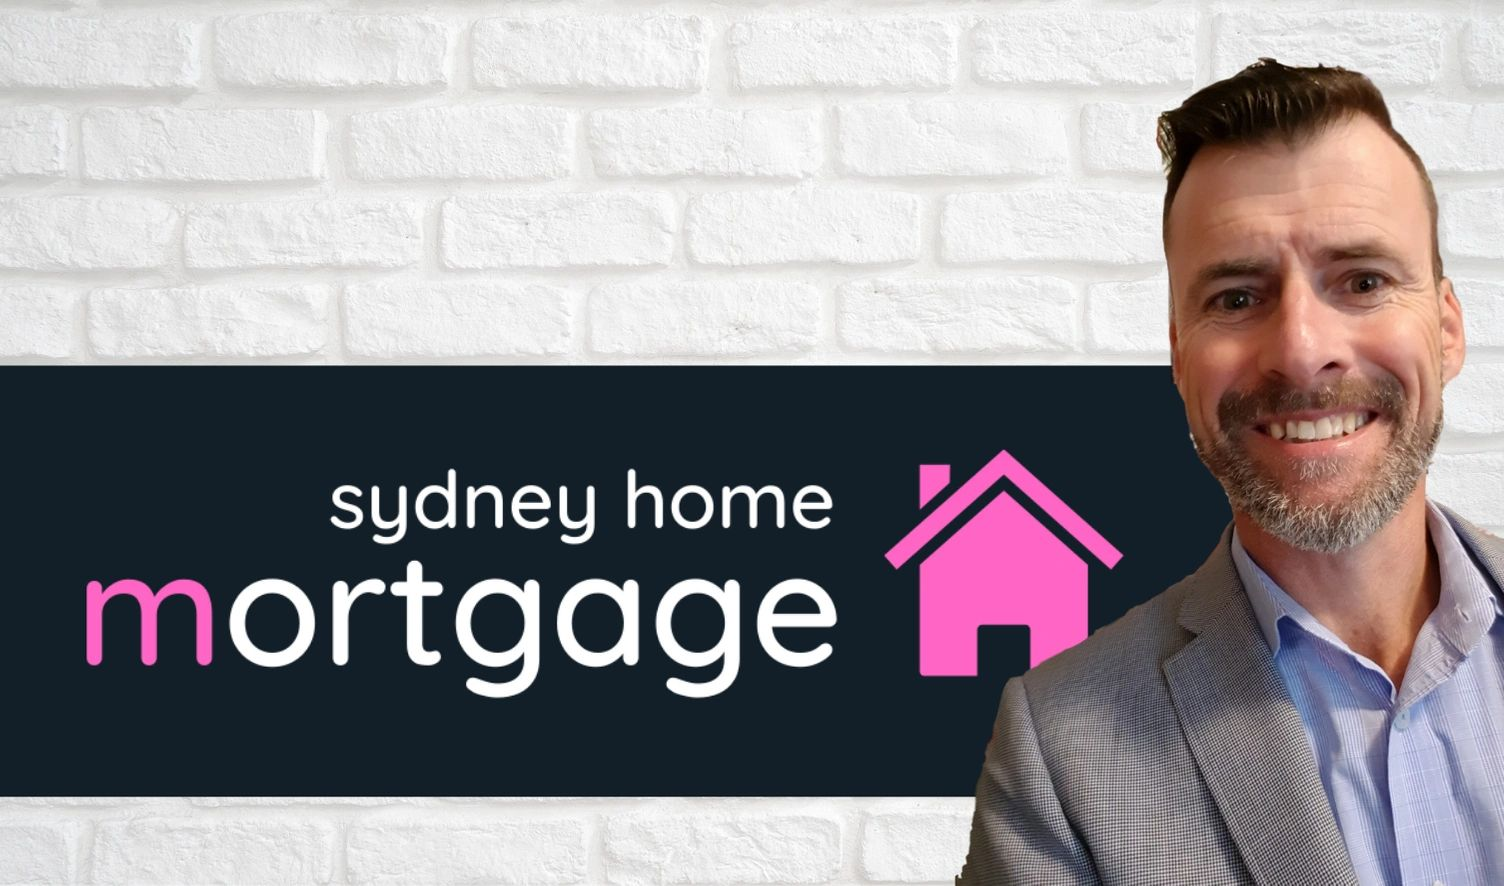 mortgage broker Sydney, finance broker, investment loan, first home buyer